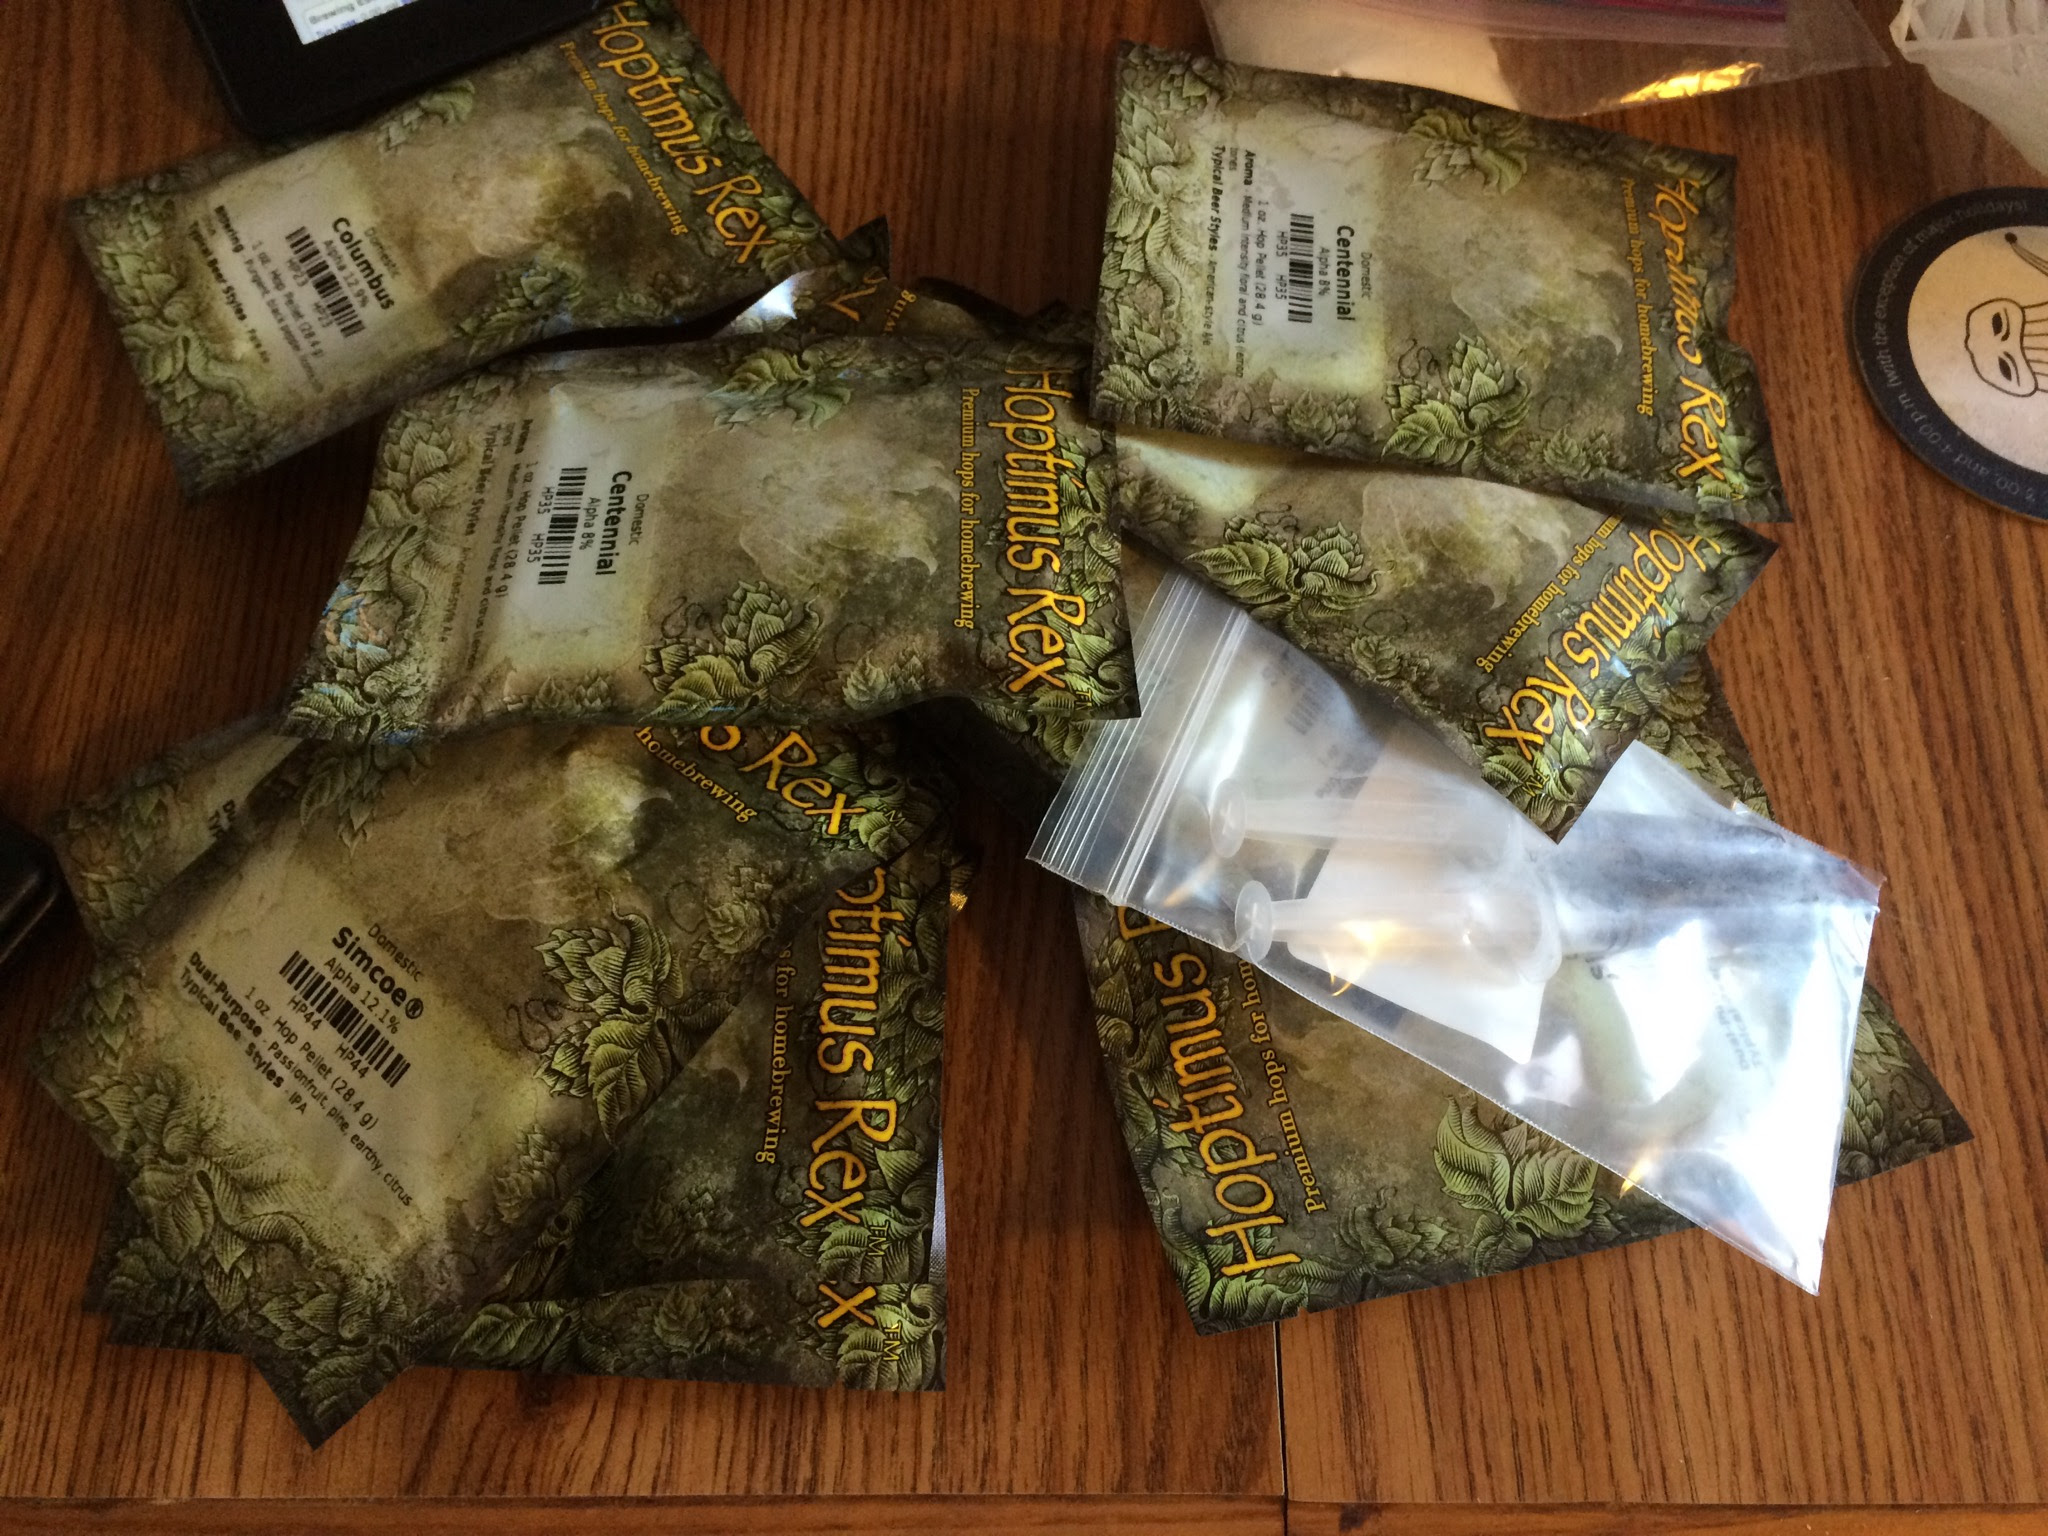 I may not have used all these hops if I tried to come up with my own IPA recipe.